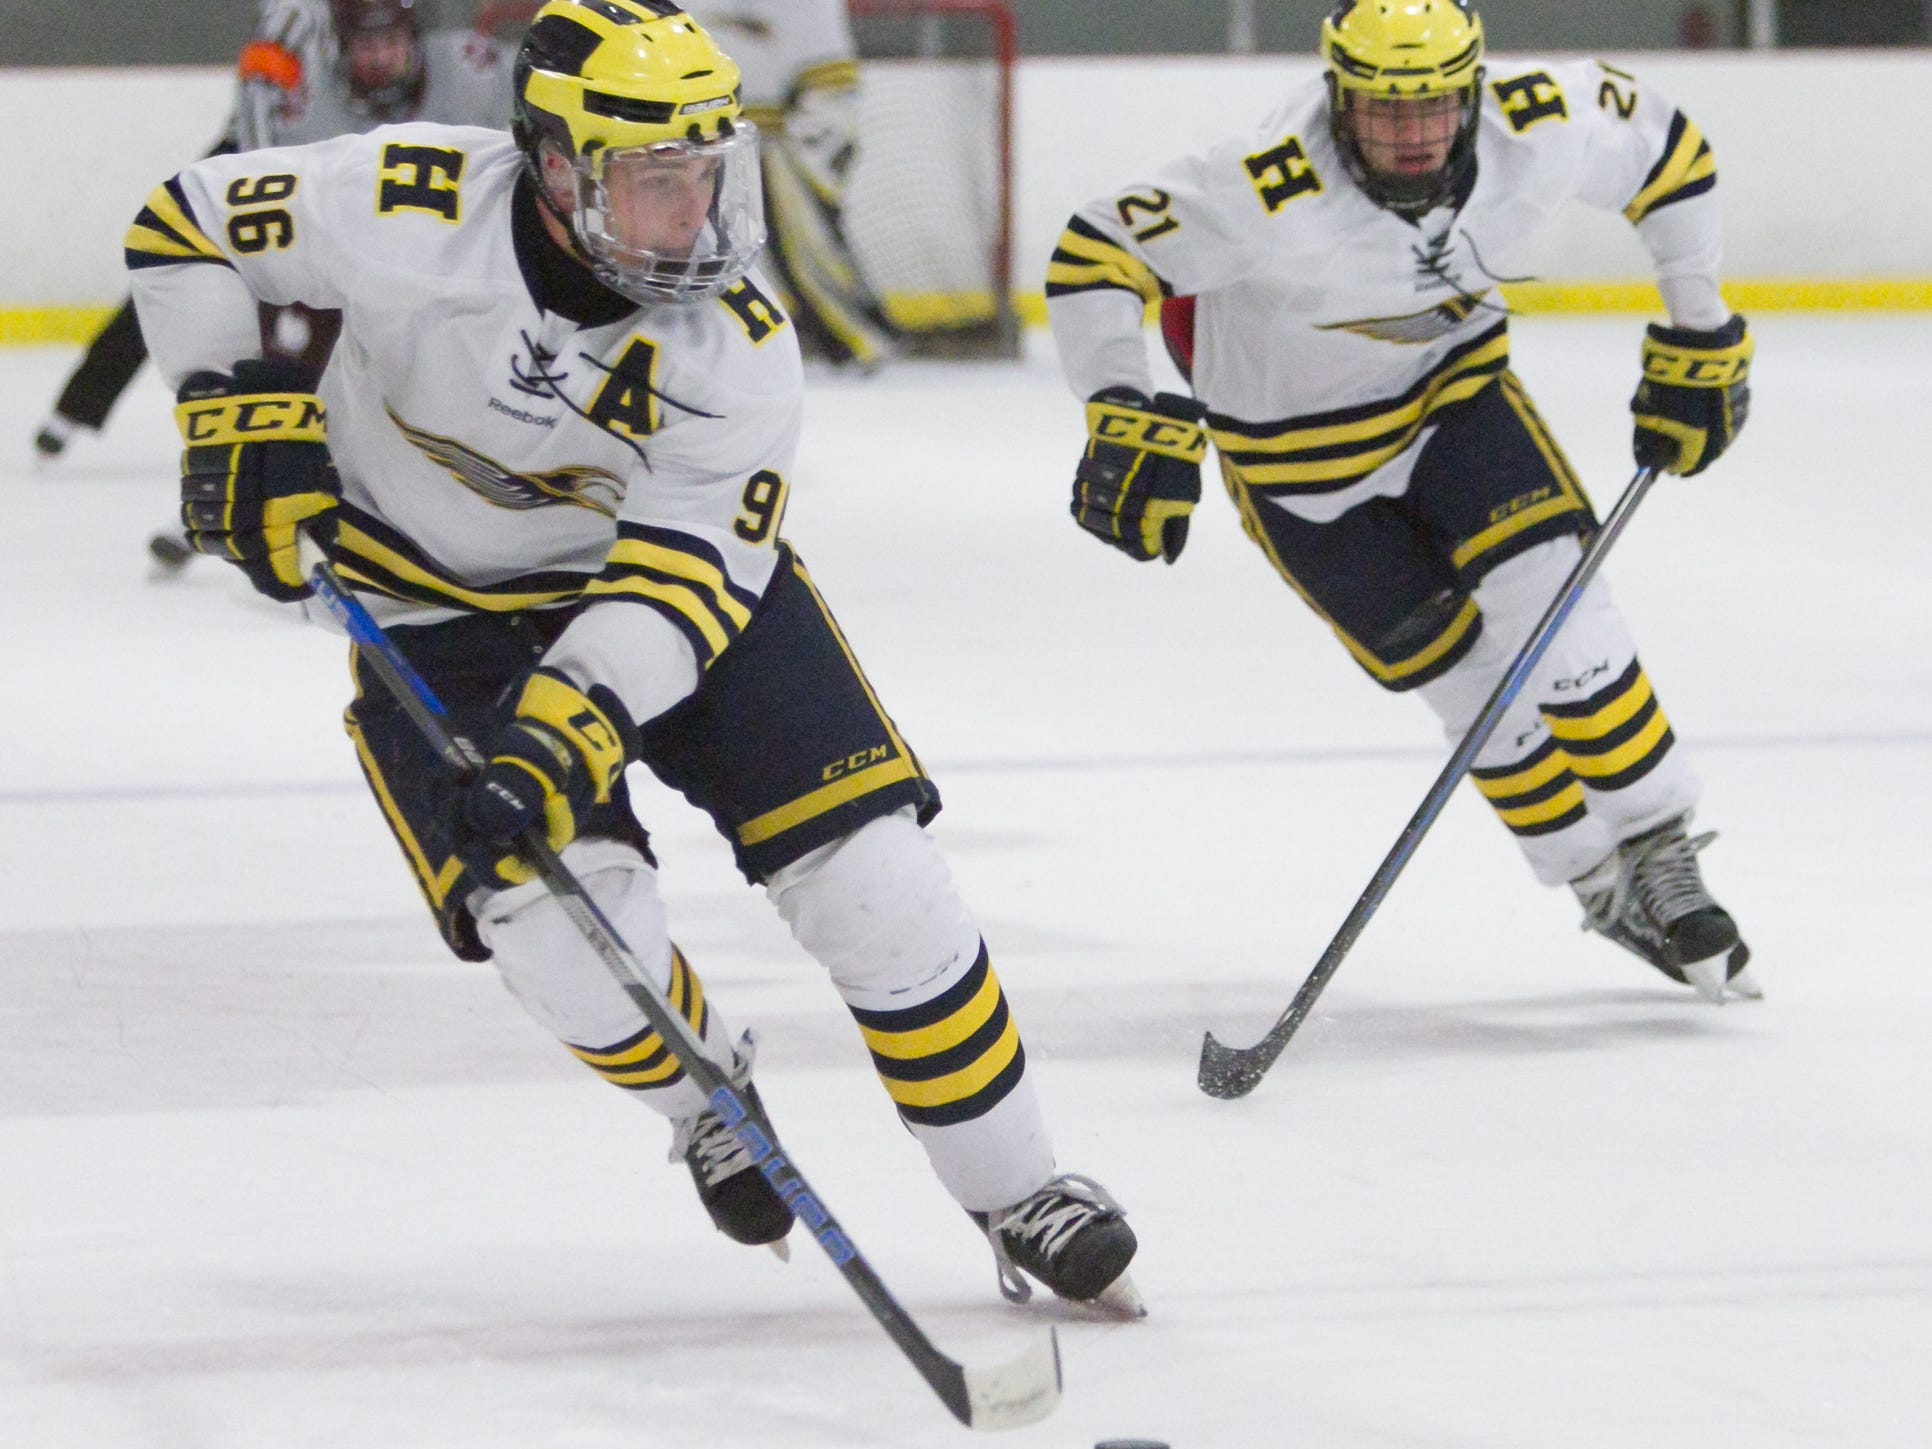 Hartland's Owen Pietila (96) and Trent Krause (21) rush up the ice in a 2-1 victory over Detroit U of D Jesuit on Friday, Jan. 11, 2019 at Hartland Sports Center.